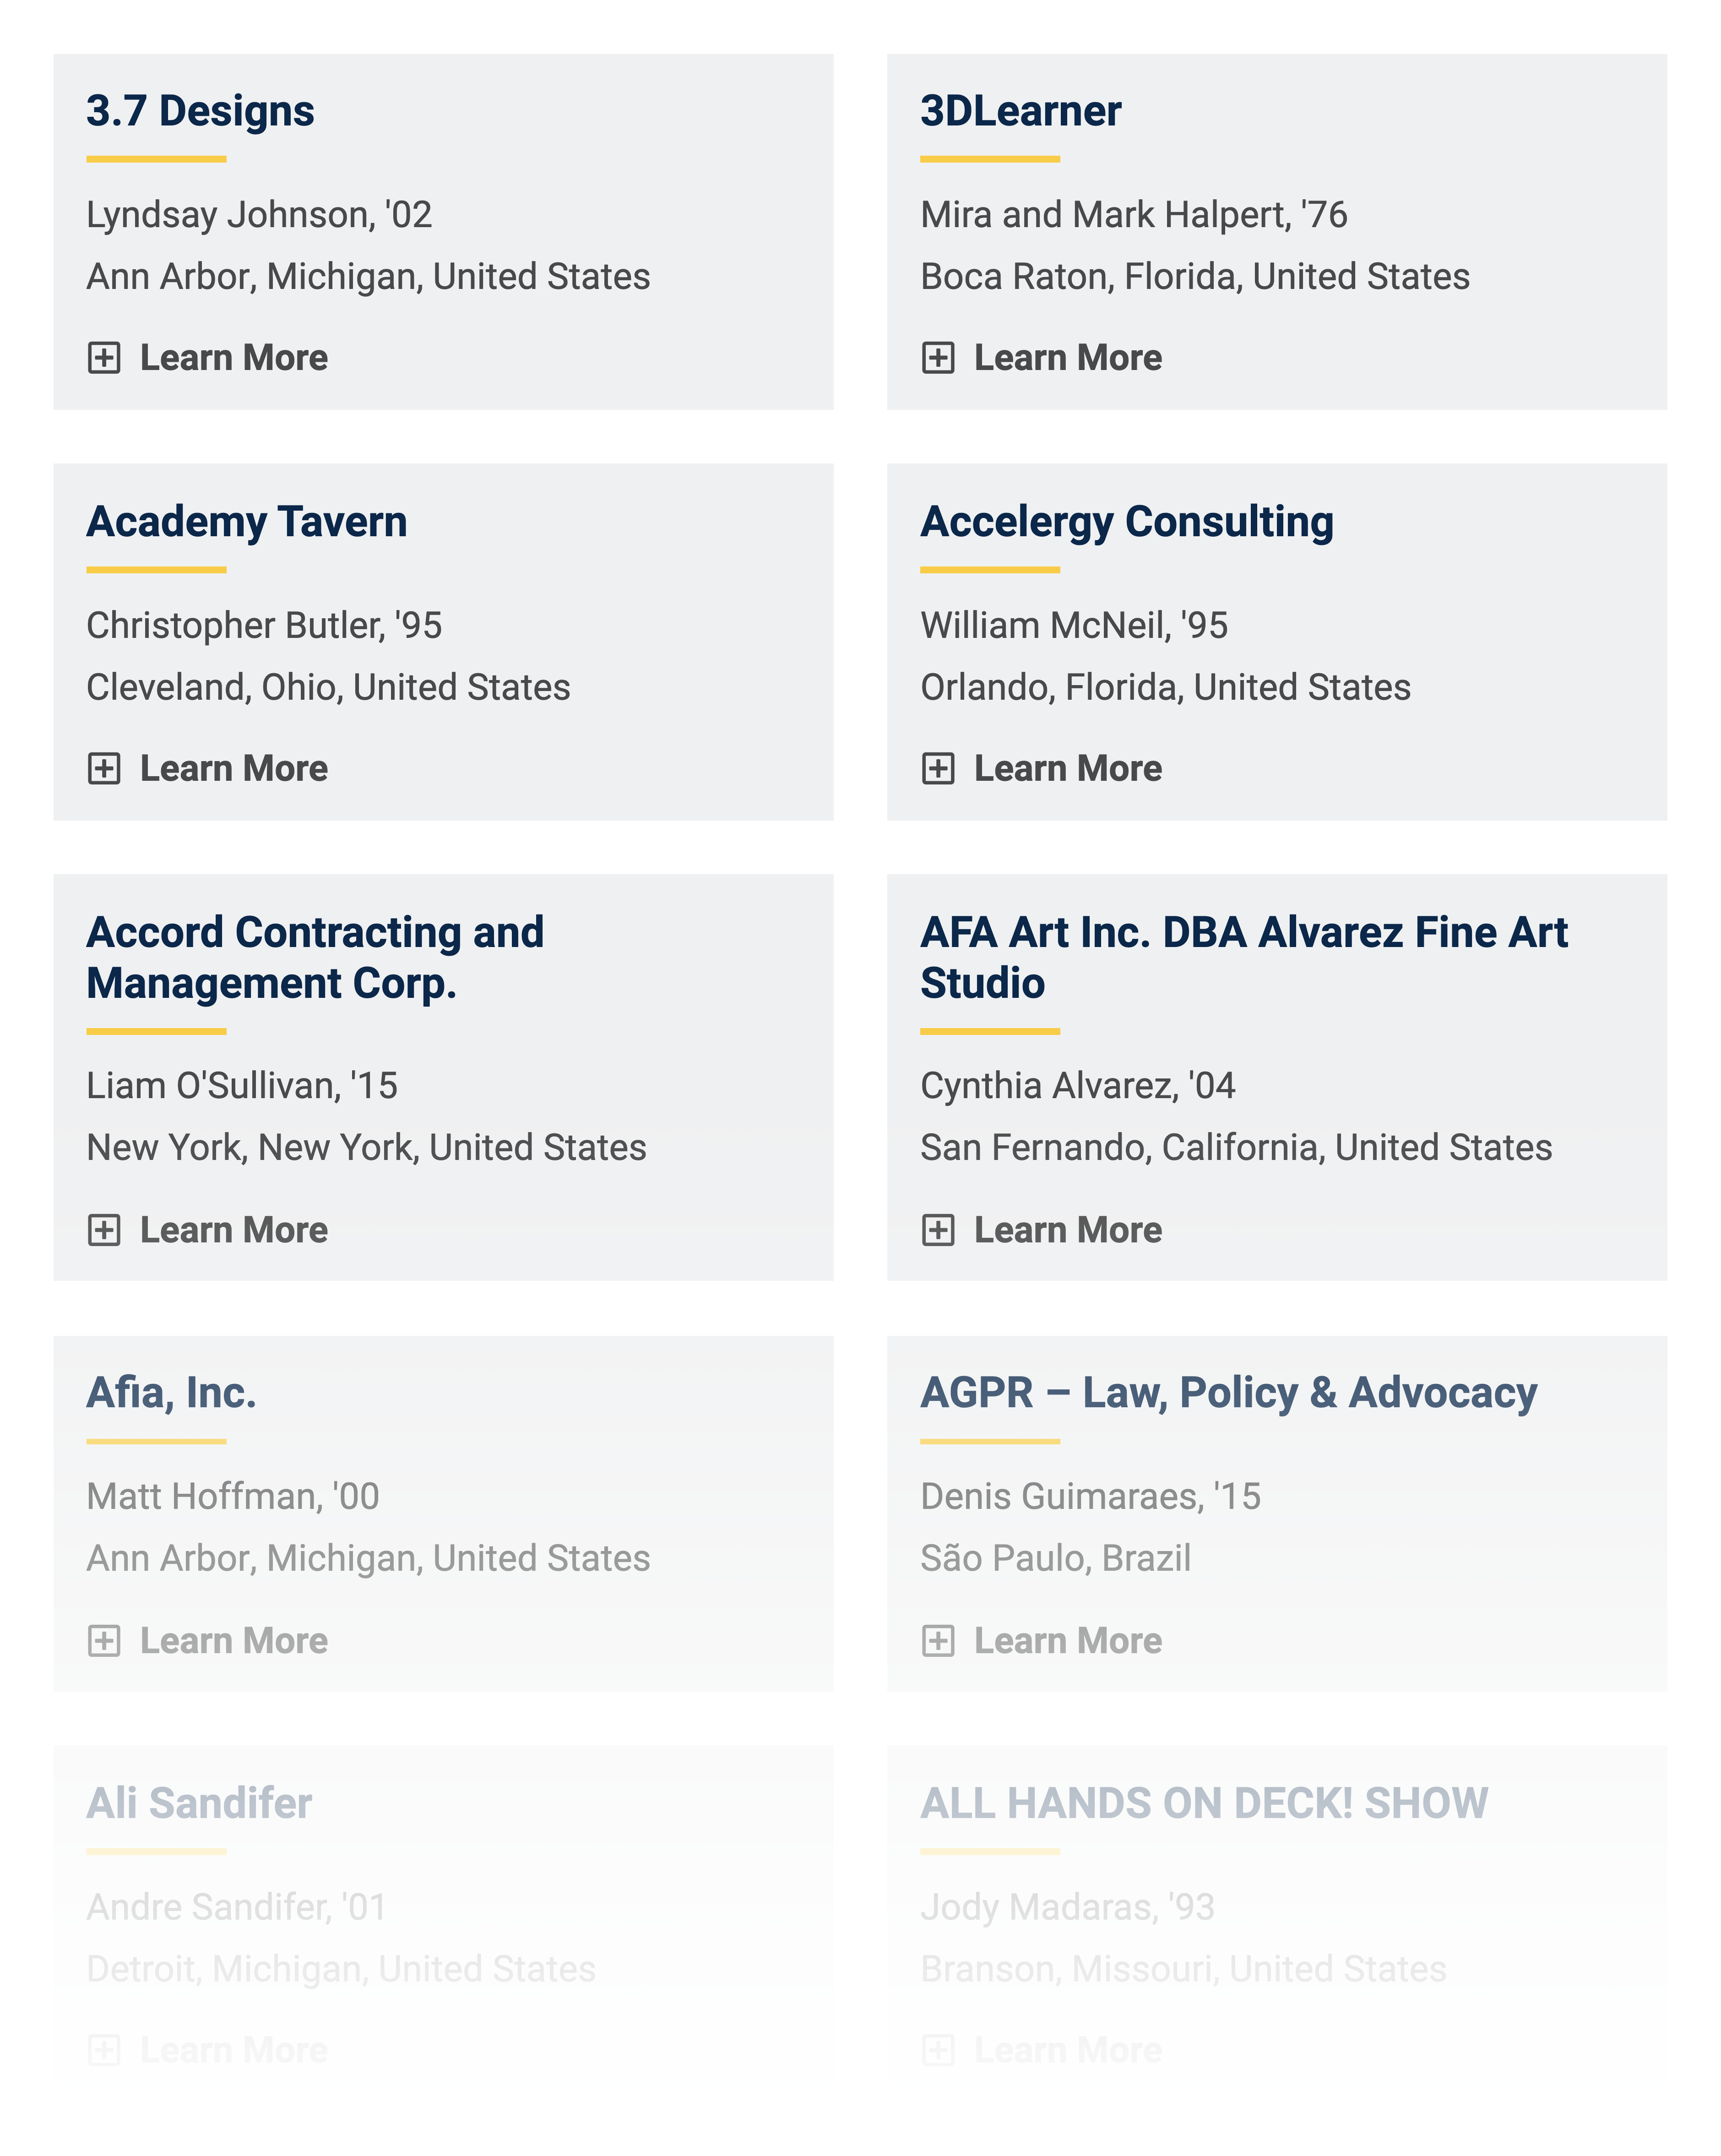 Businesses owned by Michigan alumni